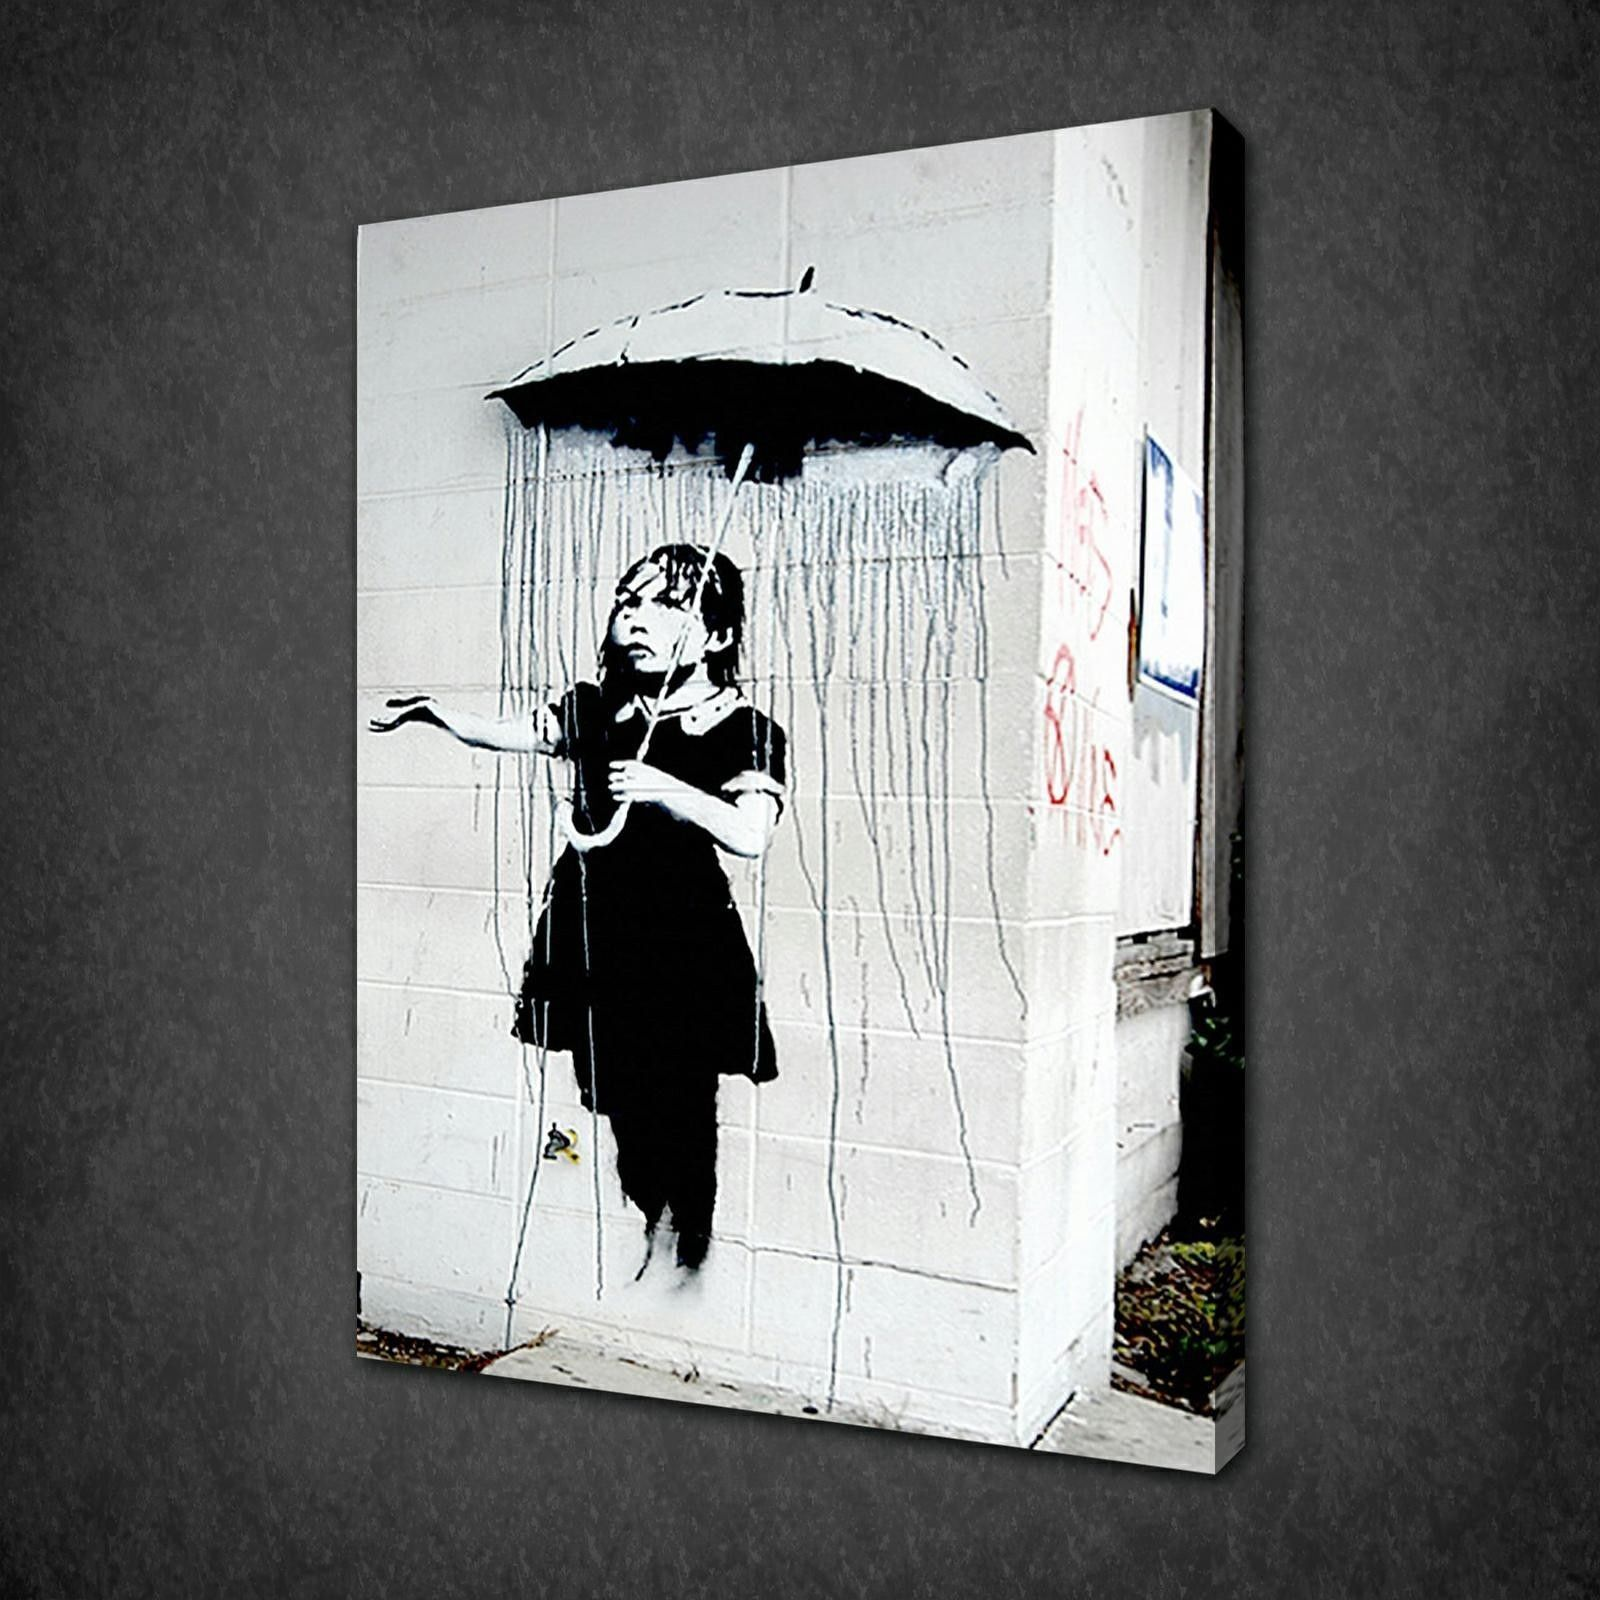 BANKSY UMBRELLA GIRL CANVAS WALL ART PICTURES PRINTS VARIETY OF SIZES